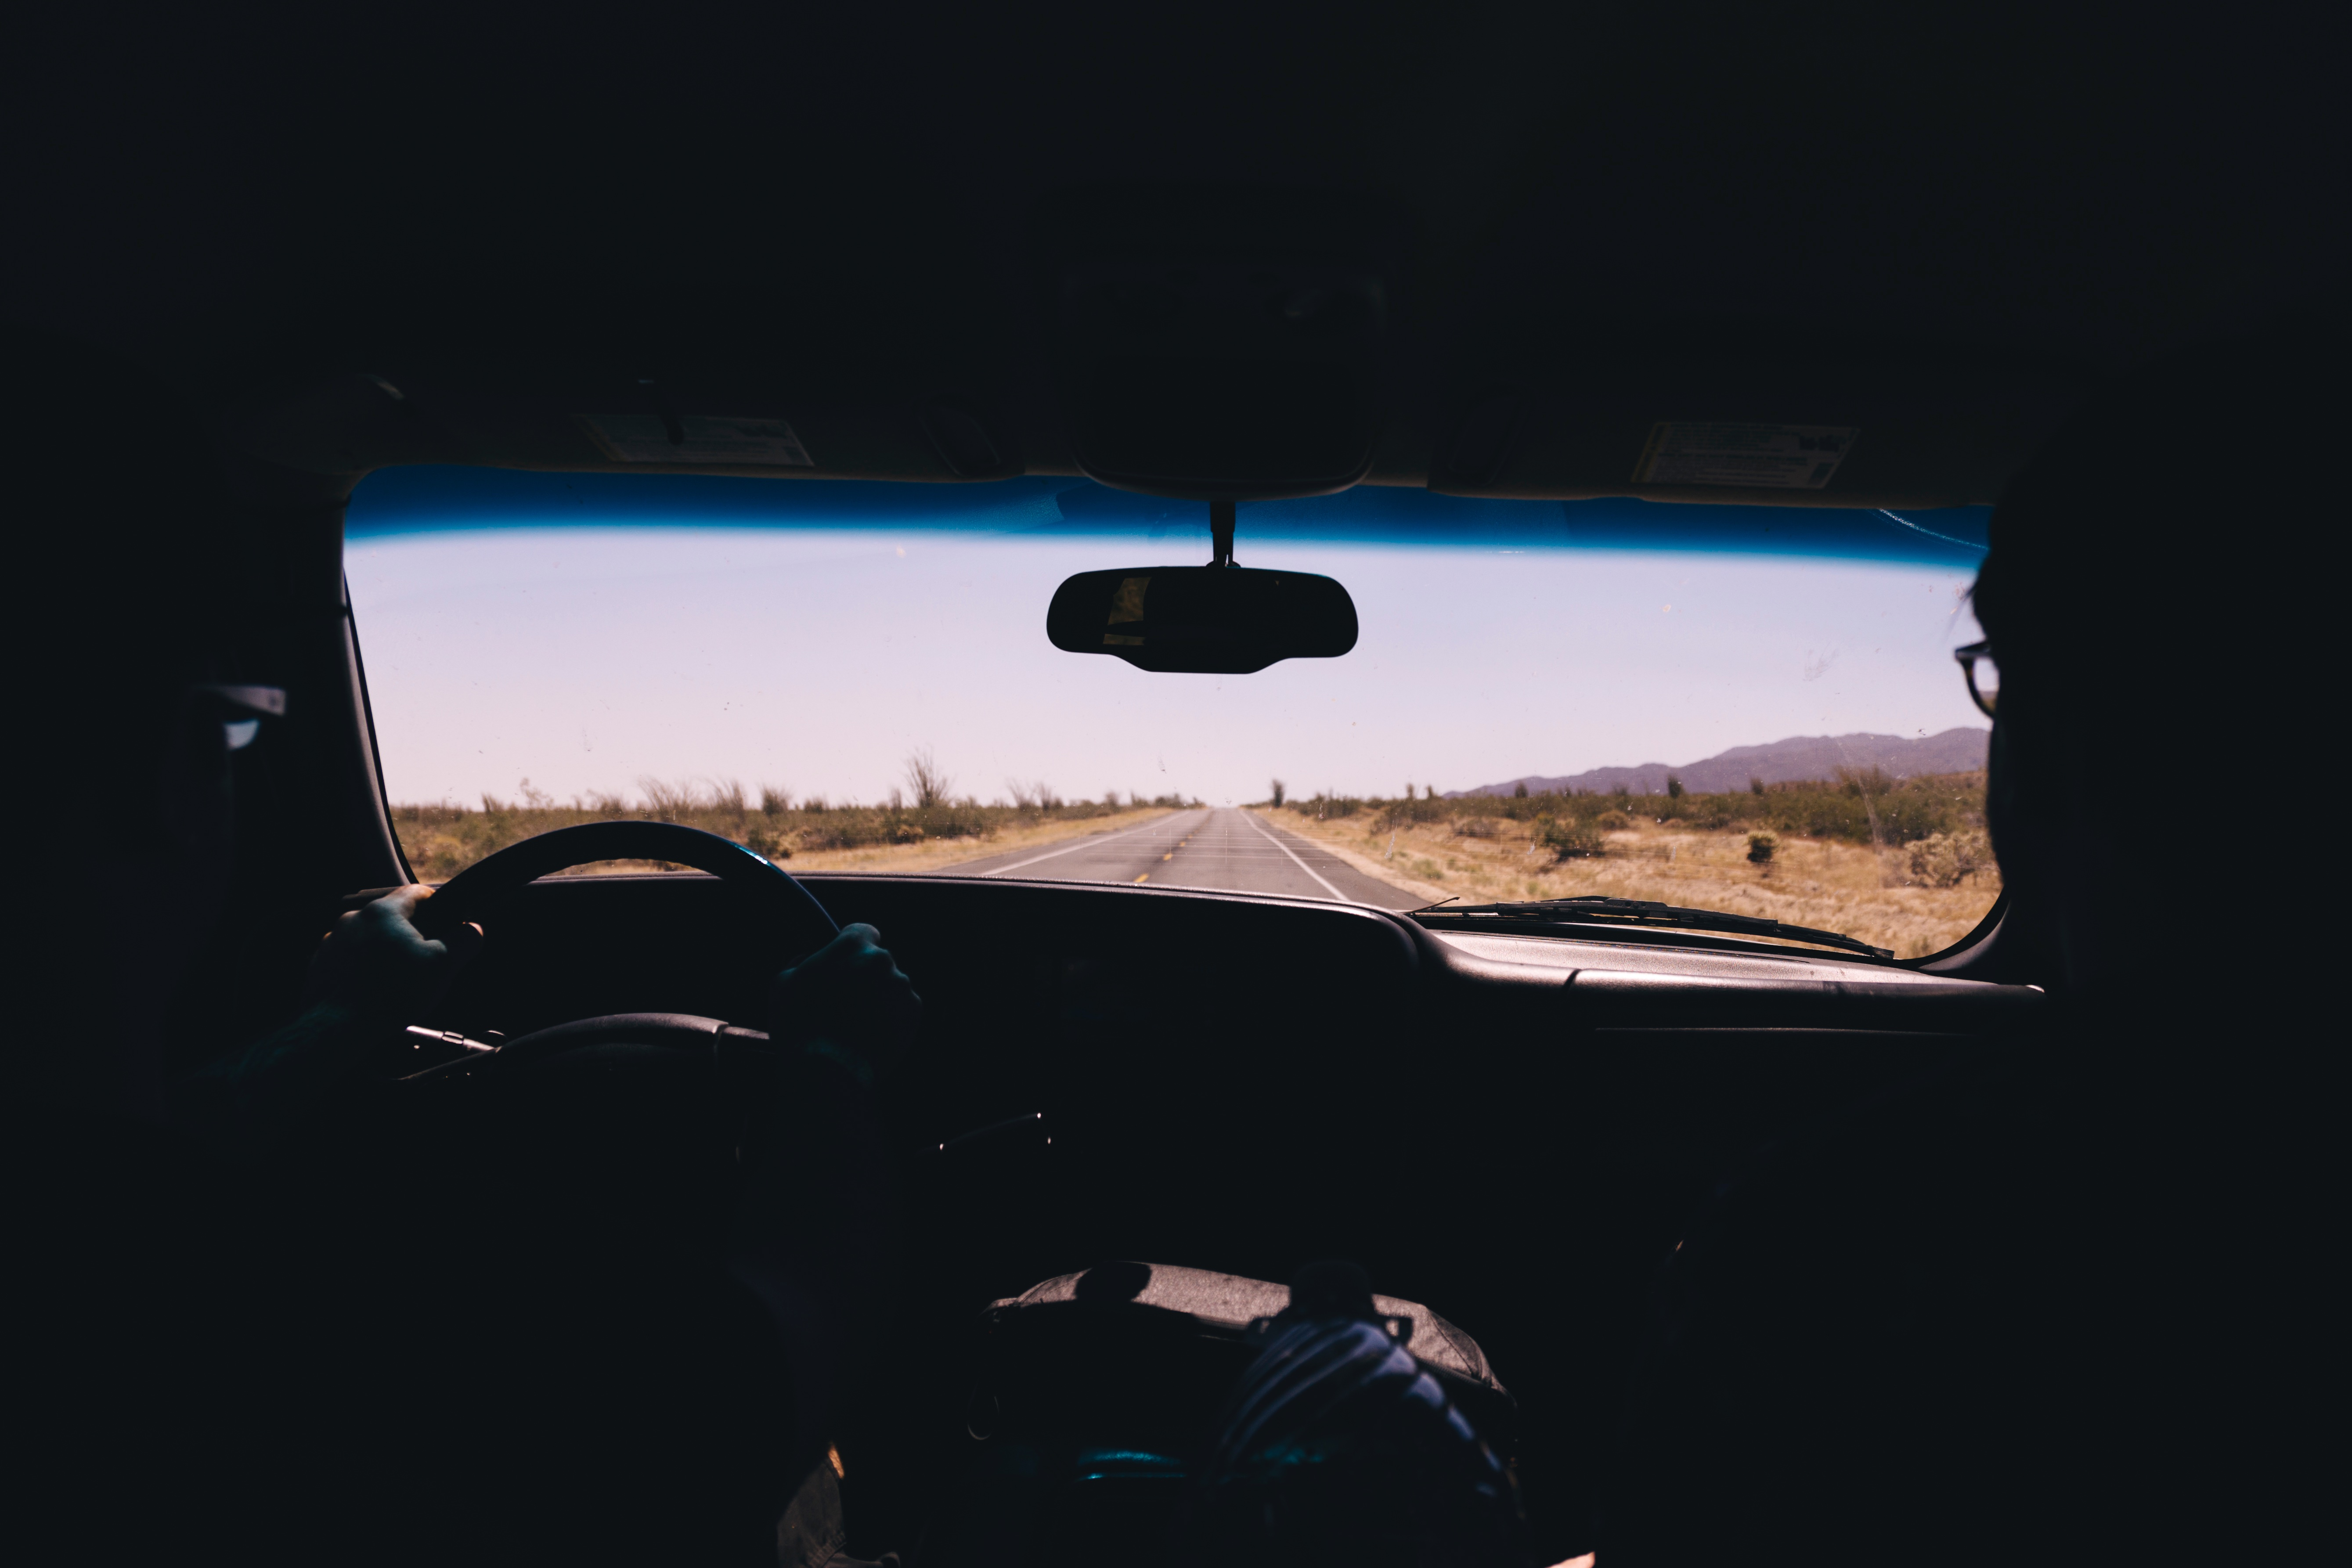 Picture taken from the backseat of car looking out a long road